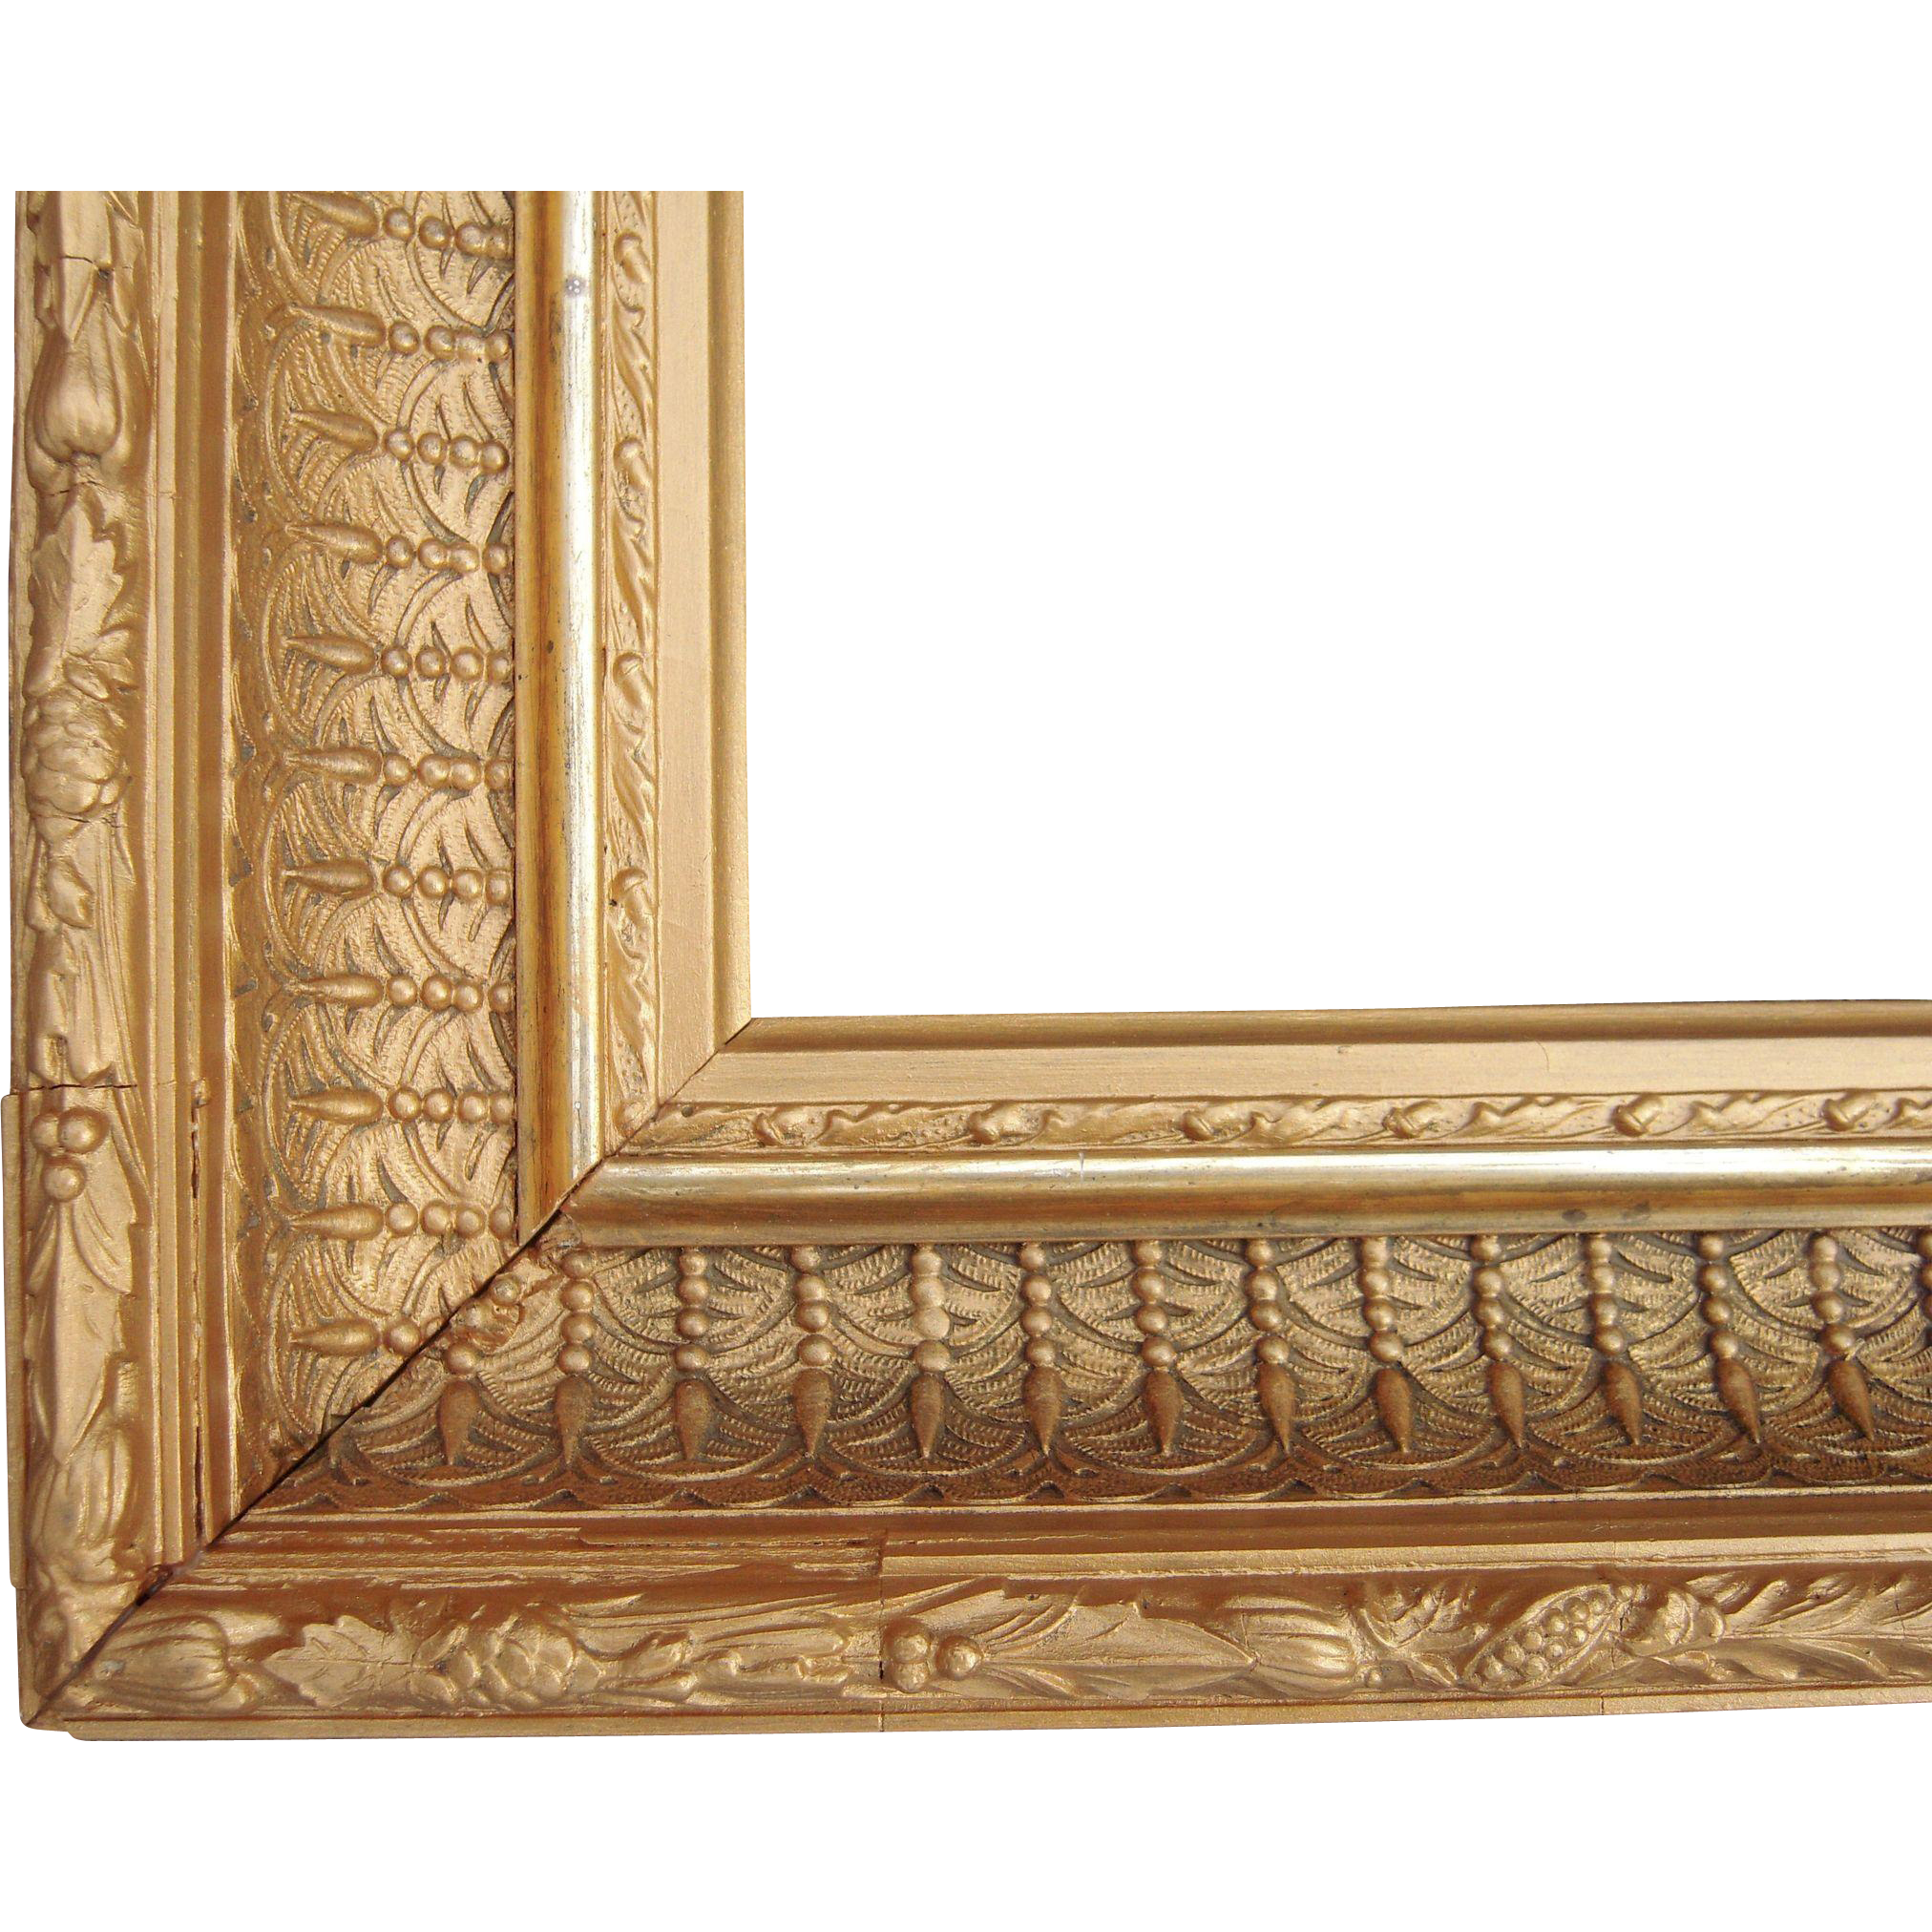 ornate gold victorian picture frame 12 x 17 from